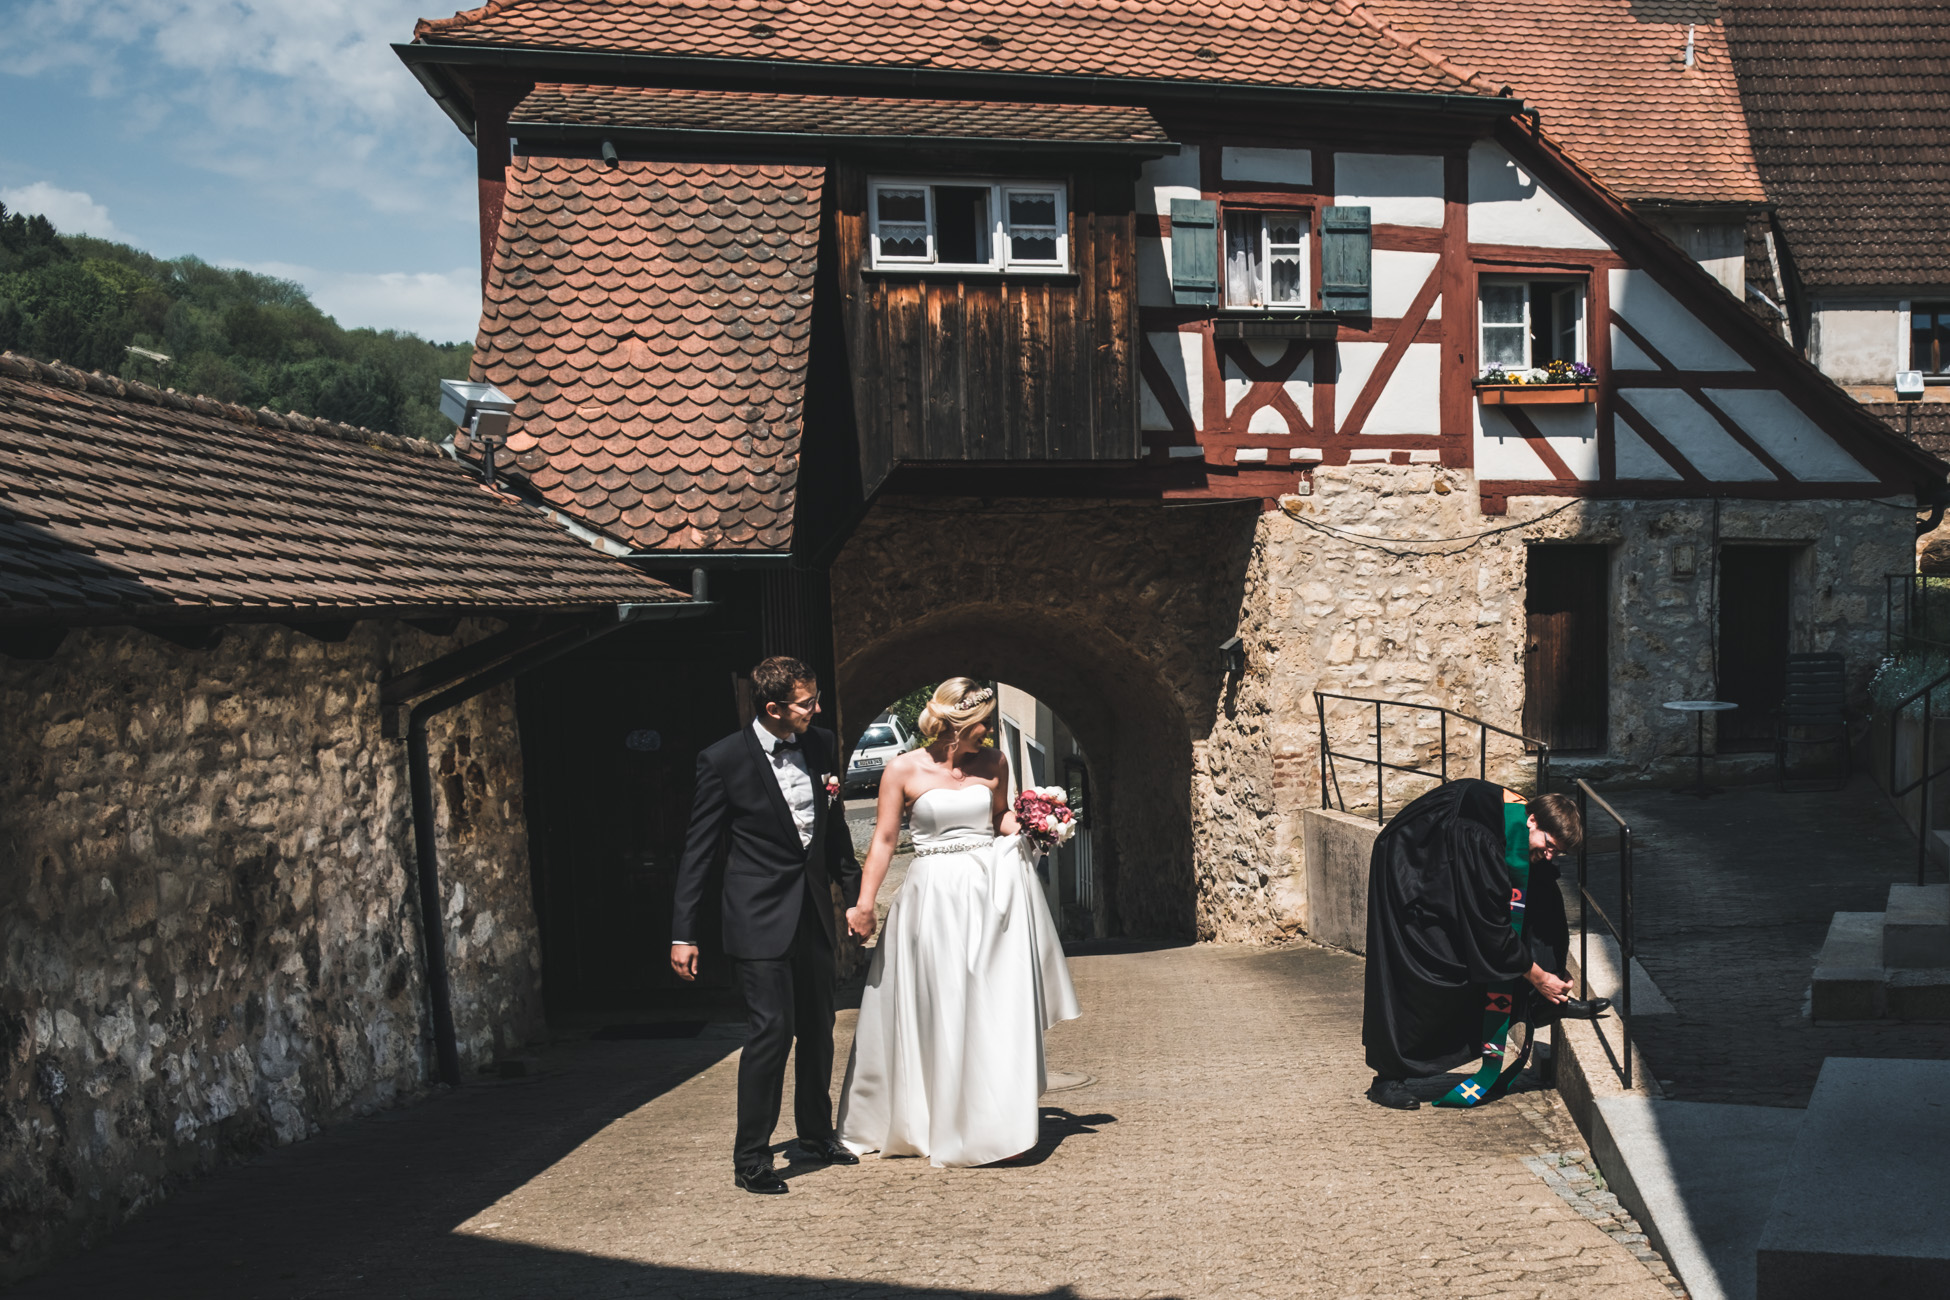 Heiraten in der evang. Kirche Kirchensittenbach